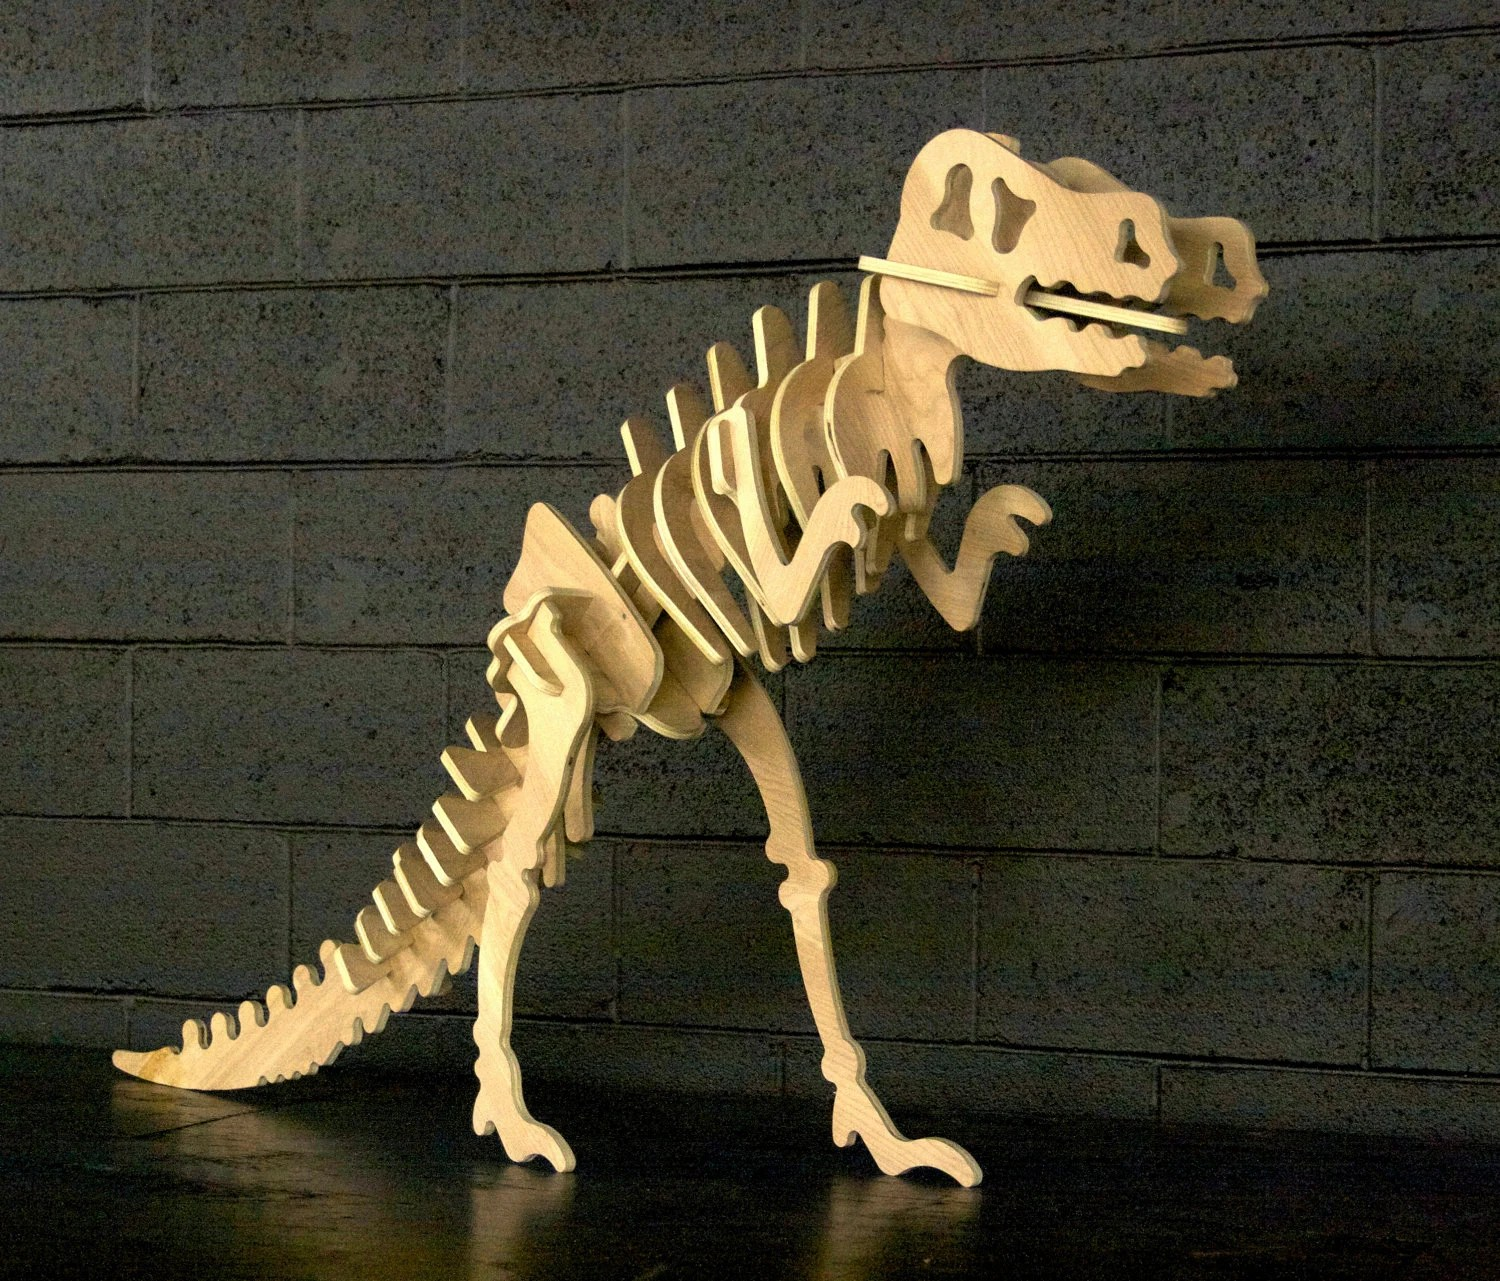 Giant Wood T Rex Dinosaur Puzzle 3 Foot Tall And By